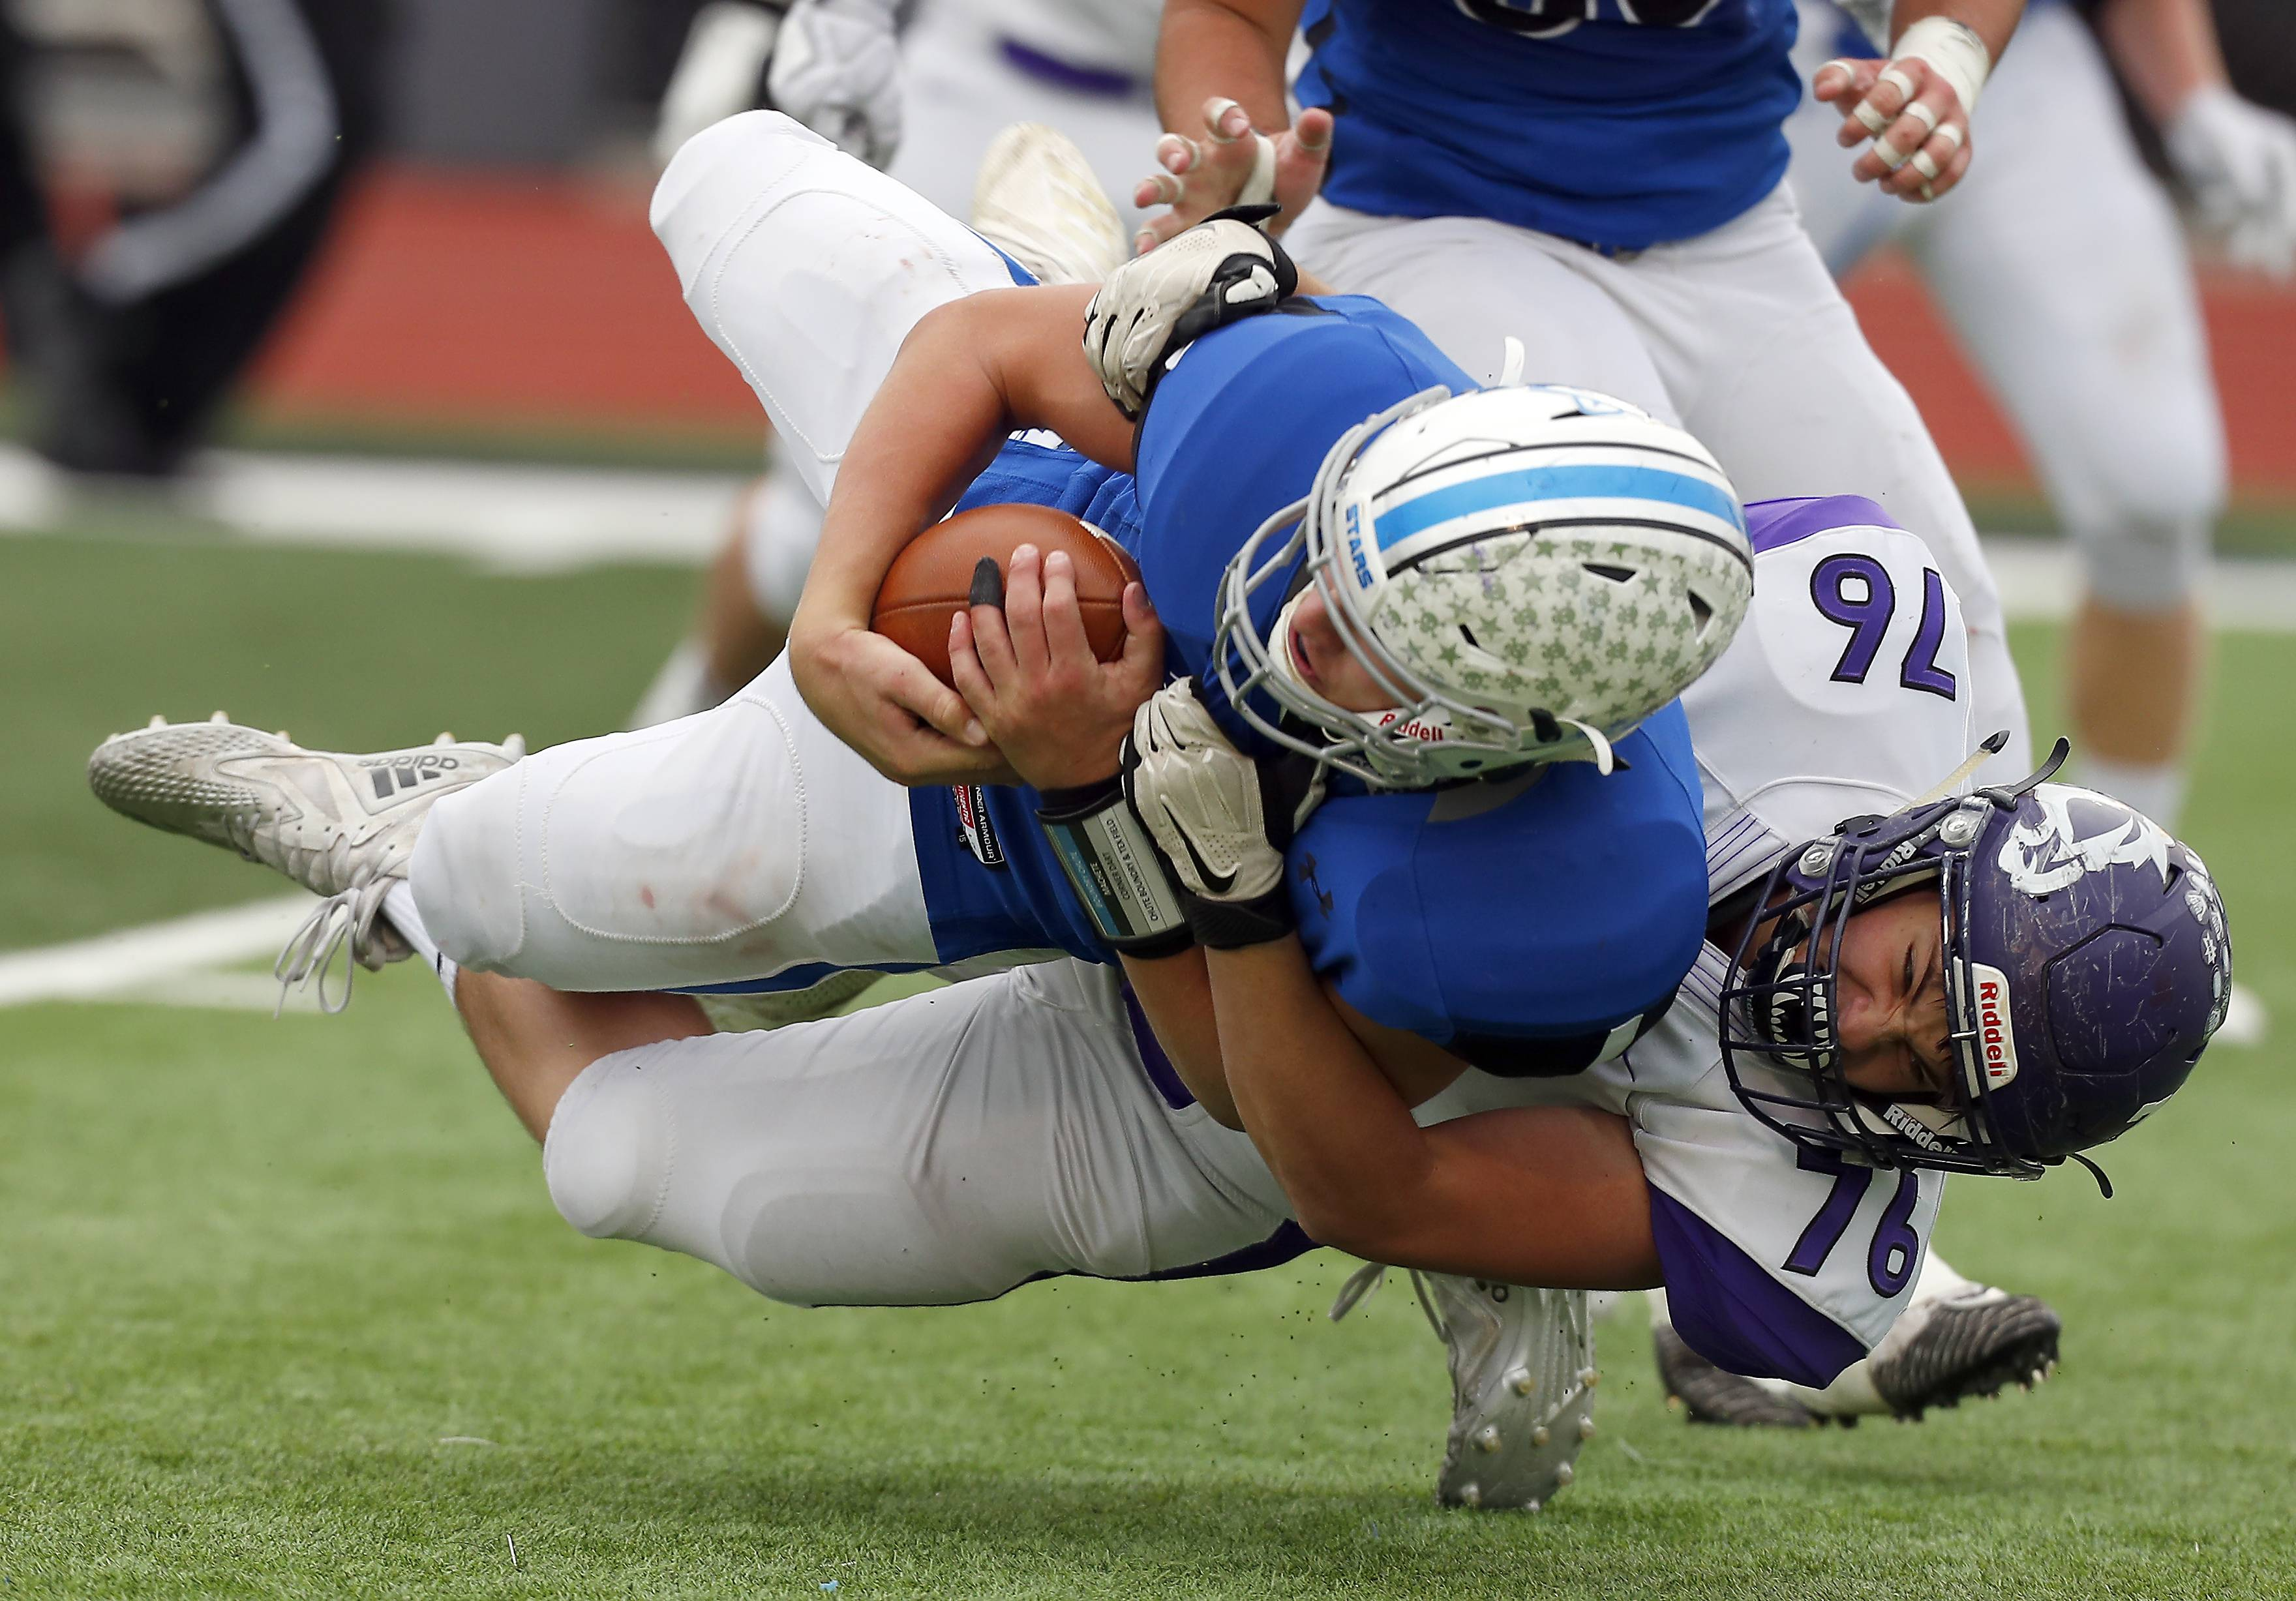 St. Charles North's Billy Durocher (19) is brought down by Rolling Meadows' Thomas Schell (76) after catching a deflection Saturday during IHSA Class 7A playoff football in St. Charles.